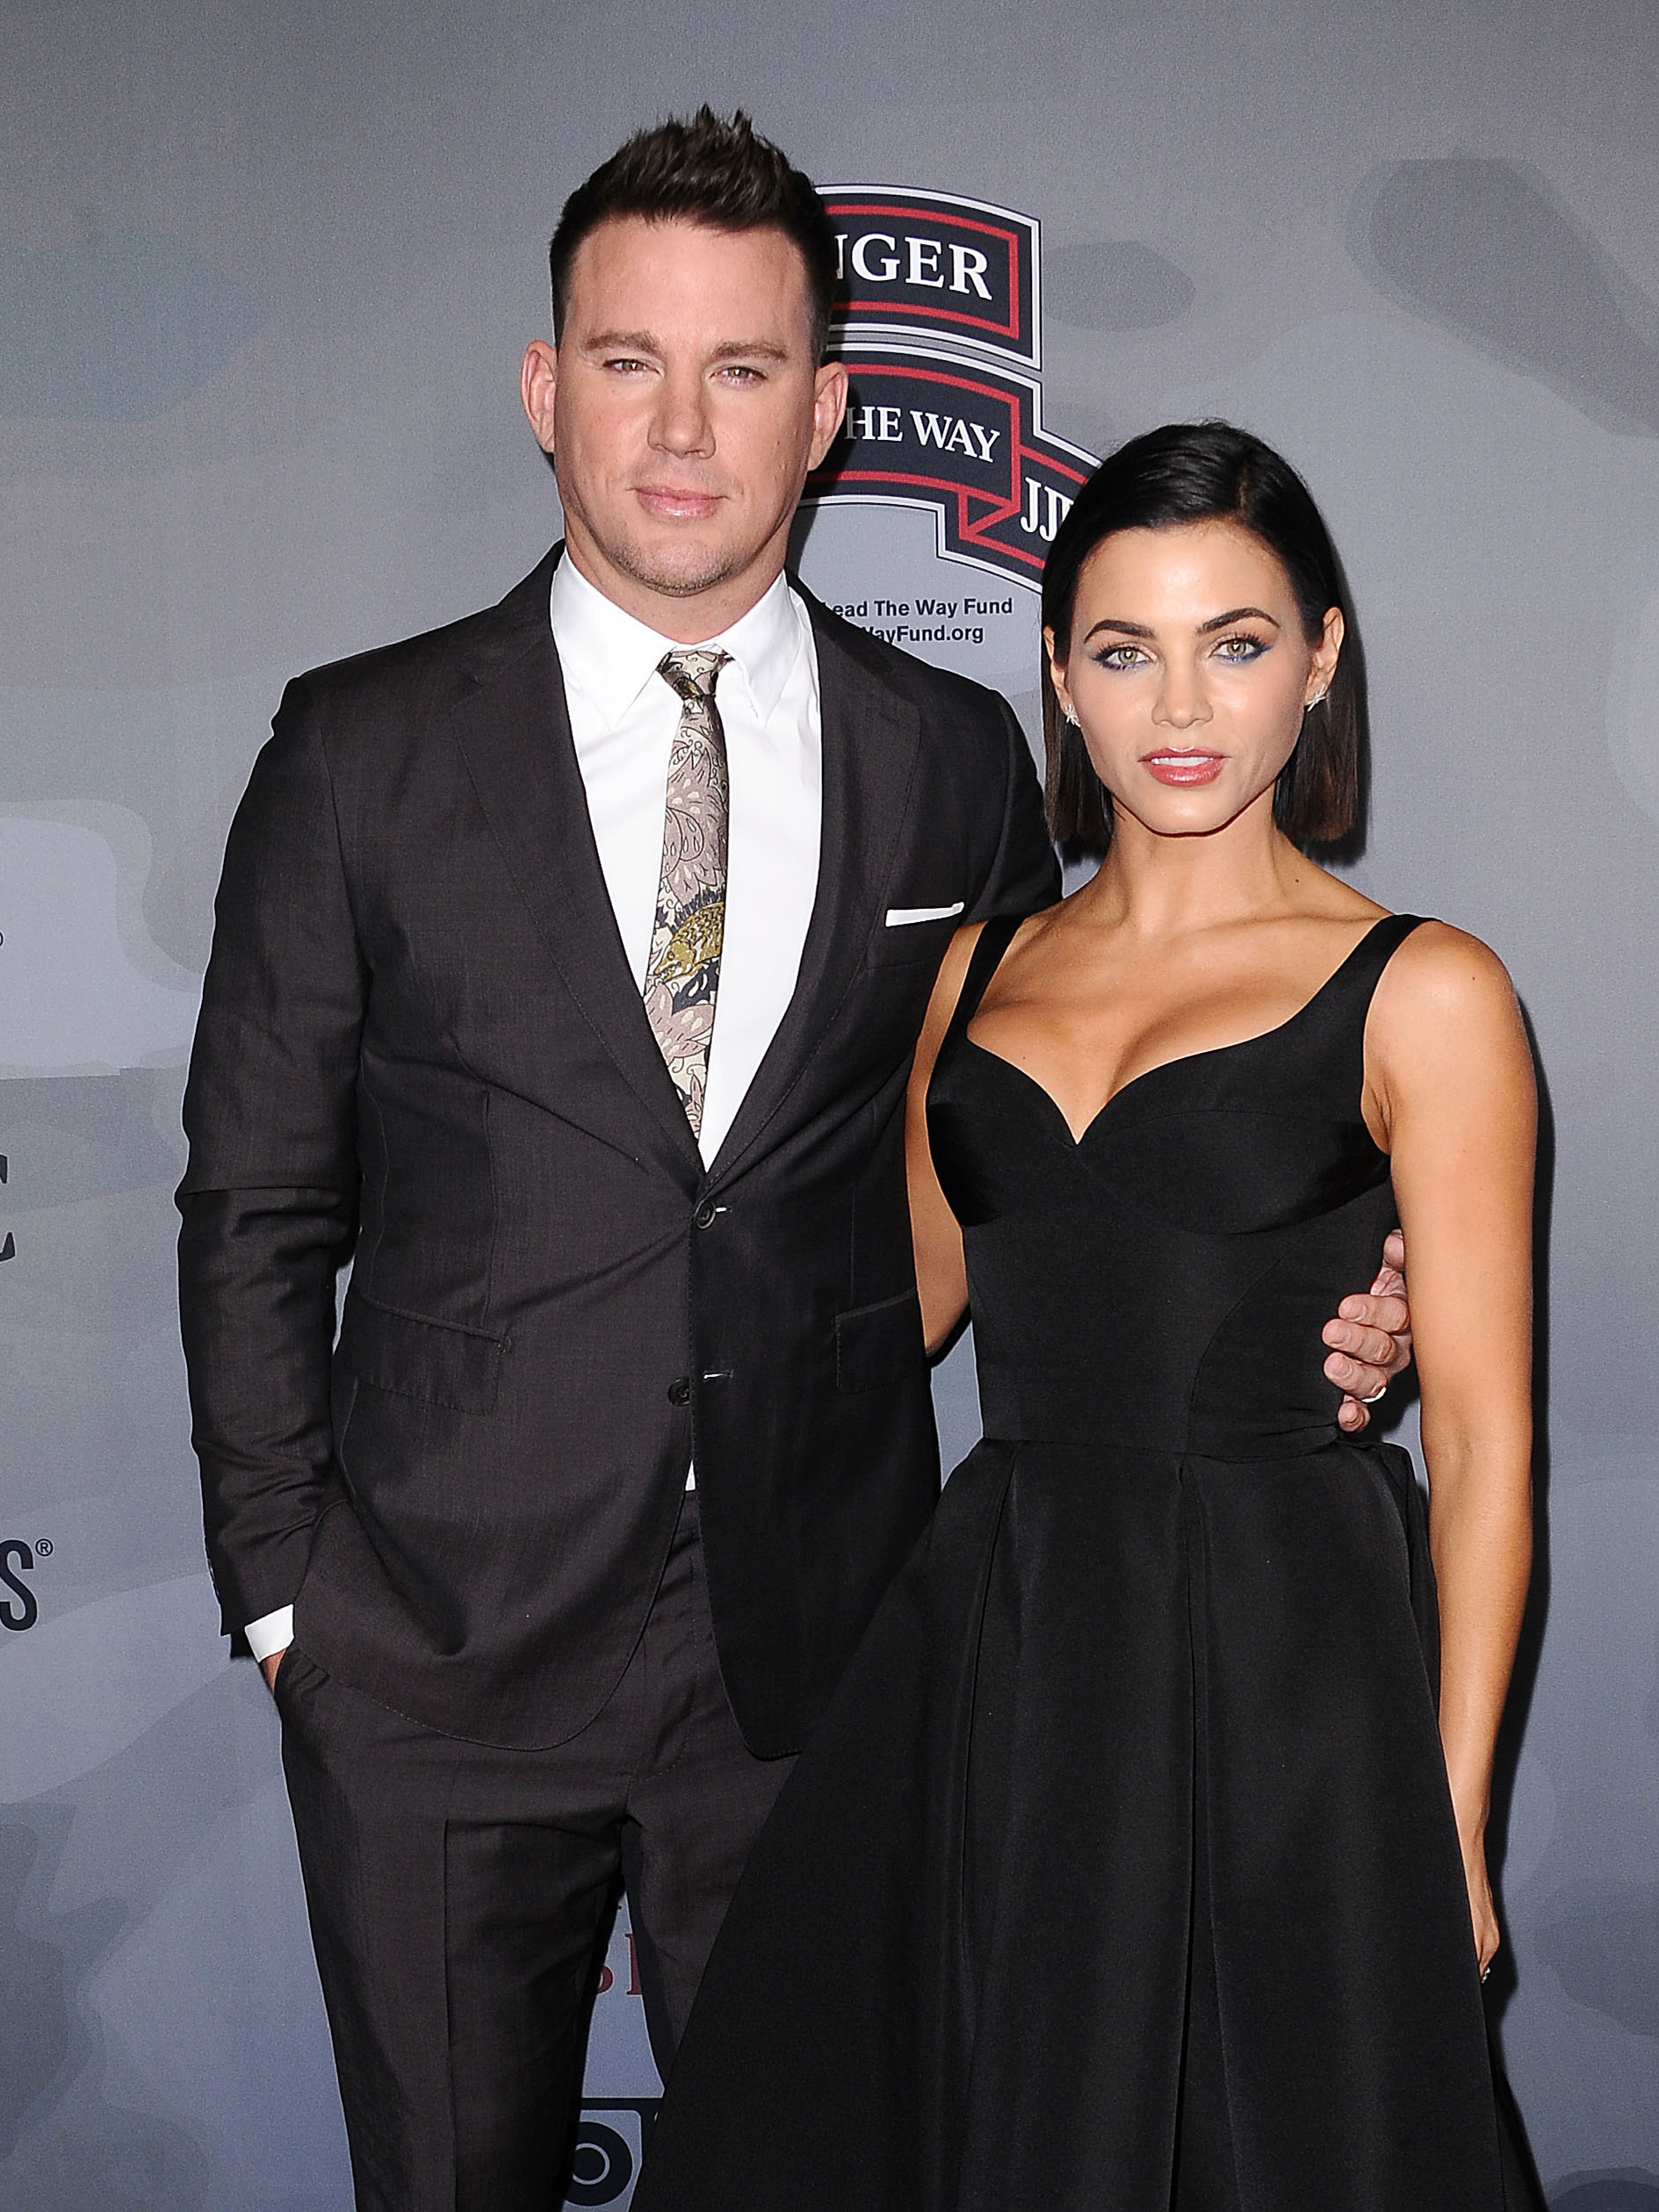 Channing Tatum's ex wife opens up about him moving on with Jessie J